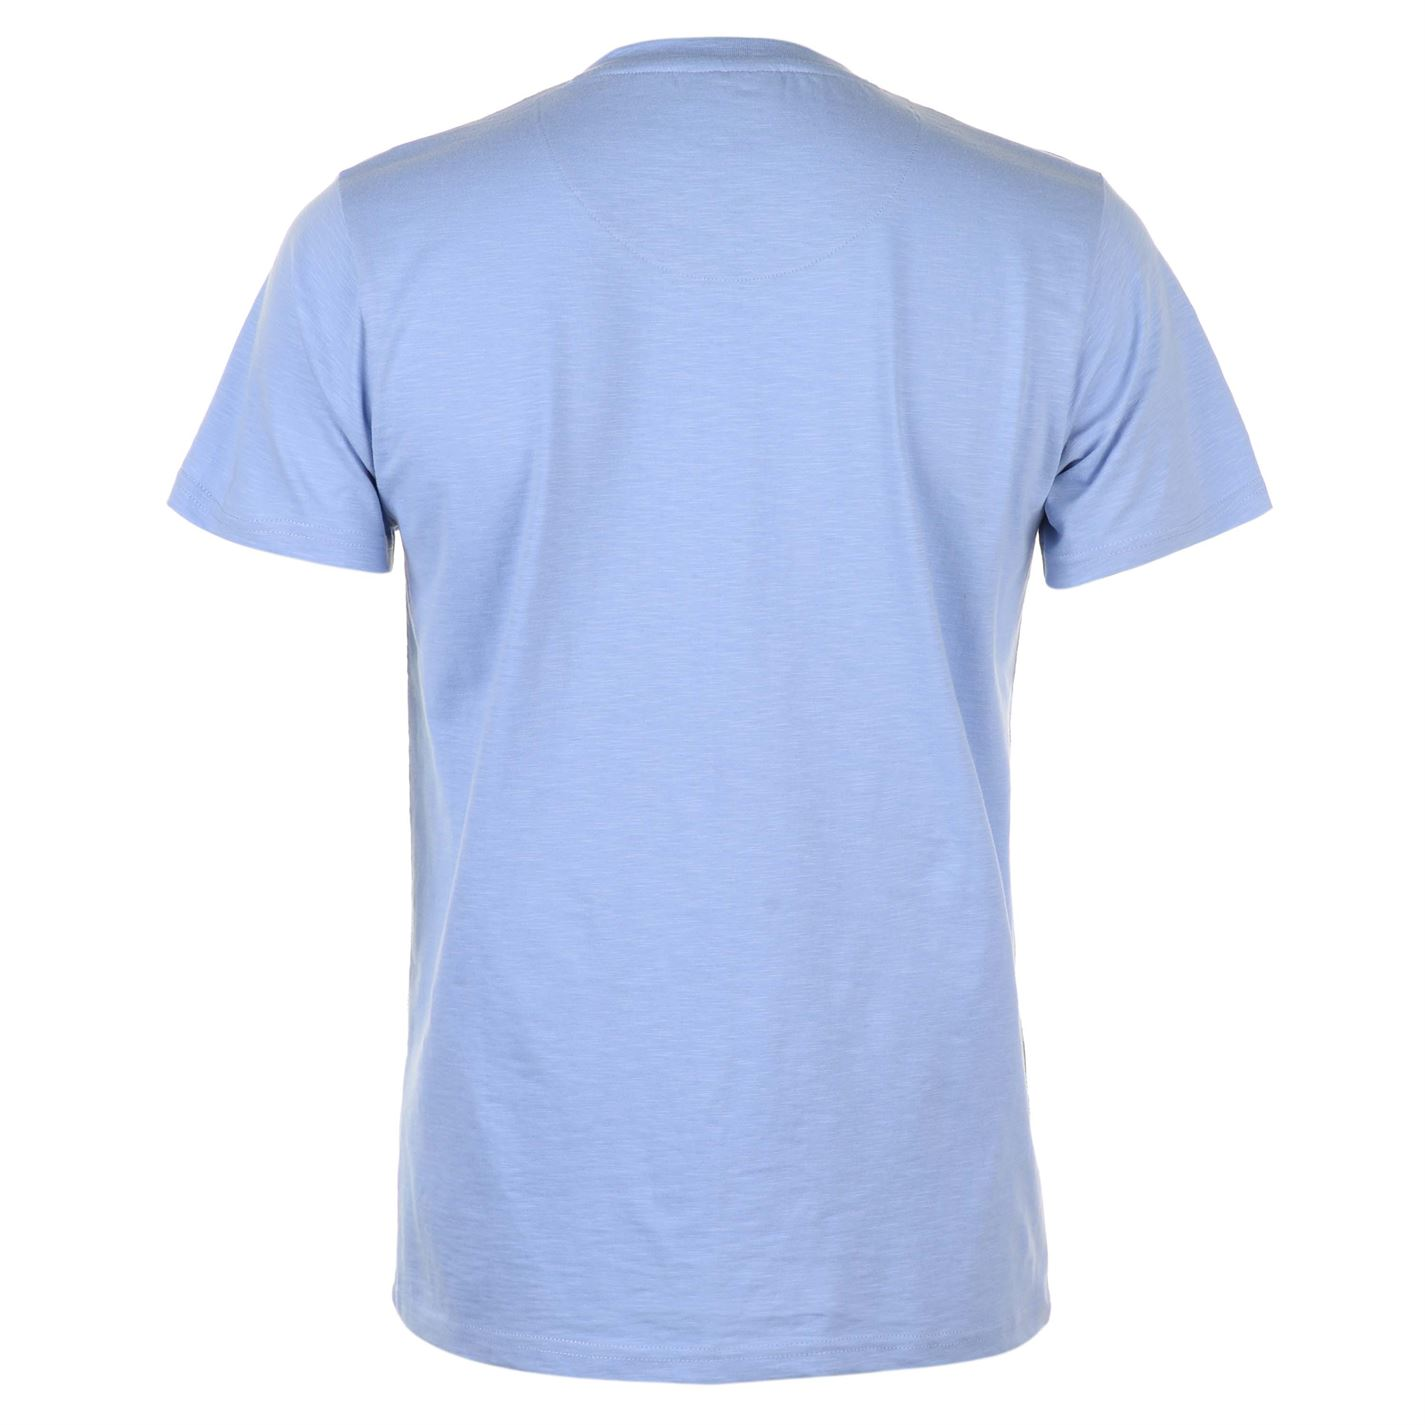 Pierre-Cardin-Mens-Print-Y-Neck-T-Shirt-V-Tee-Top-Short-Sleeve-Cotton thumbnail 15